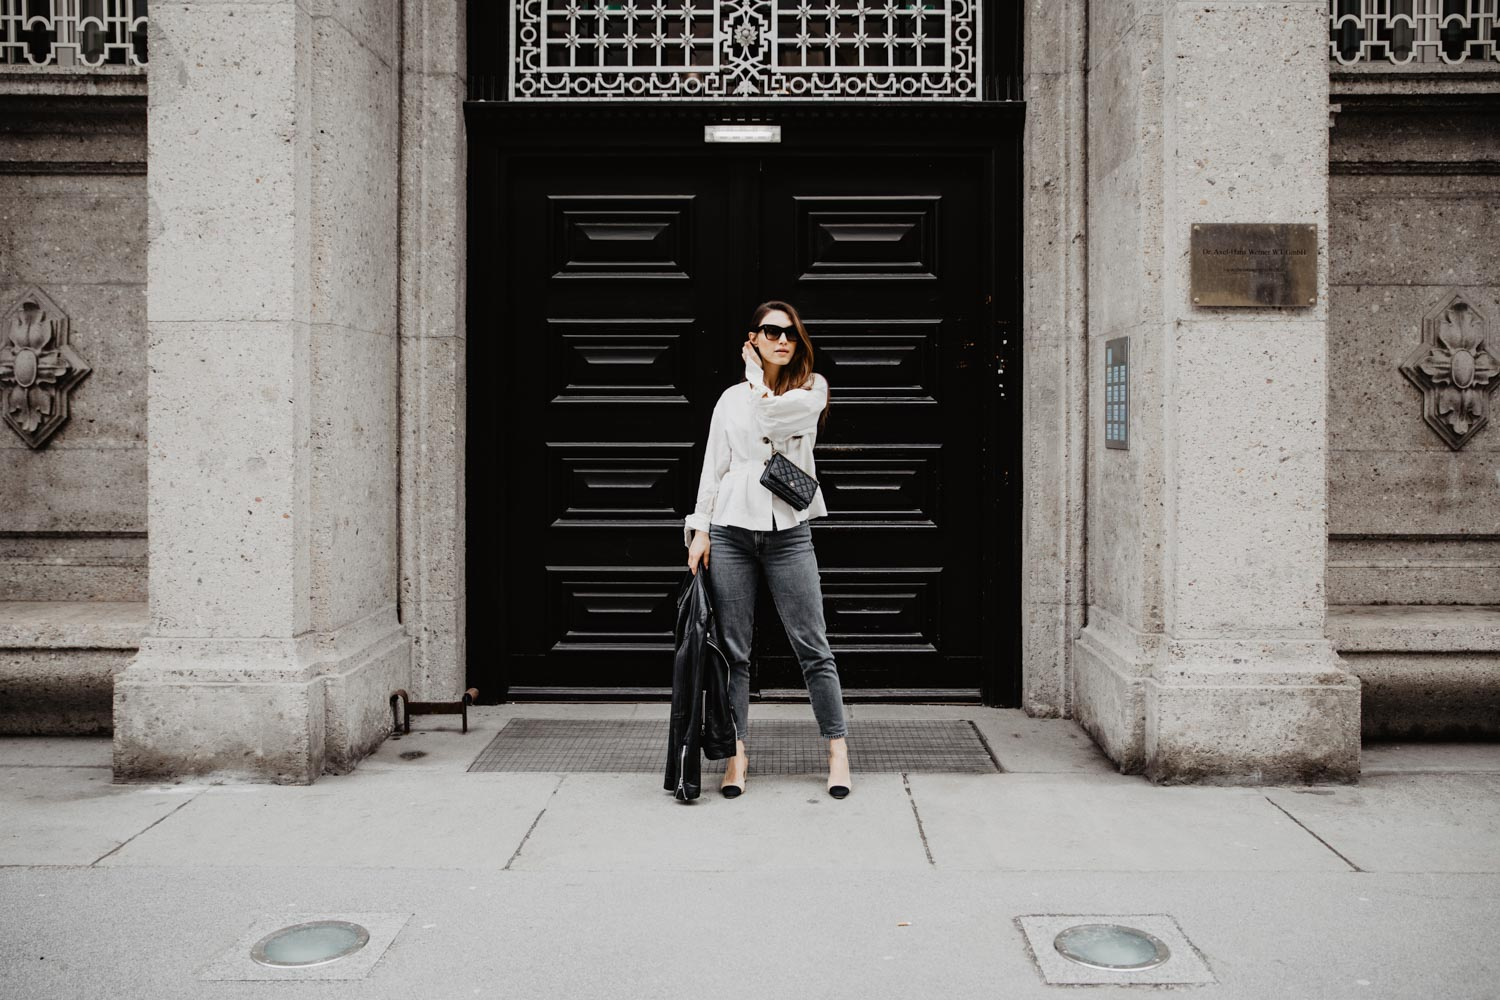 Outfit: Chanel Slingbacks, Closed Pedal Pusher Jeans, Leather Jacket, Céline Sunglasses, Chanel WOC | you rock my life @ninawro